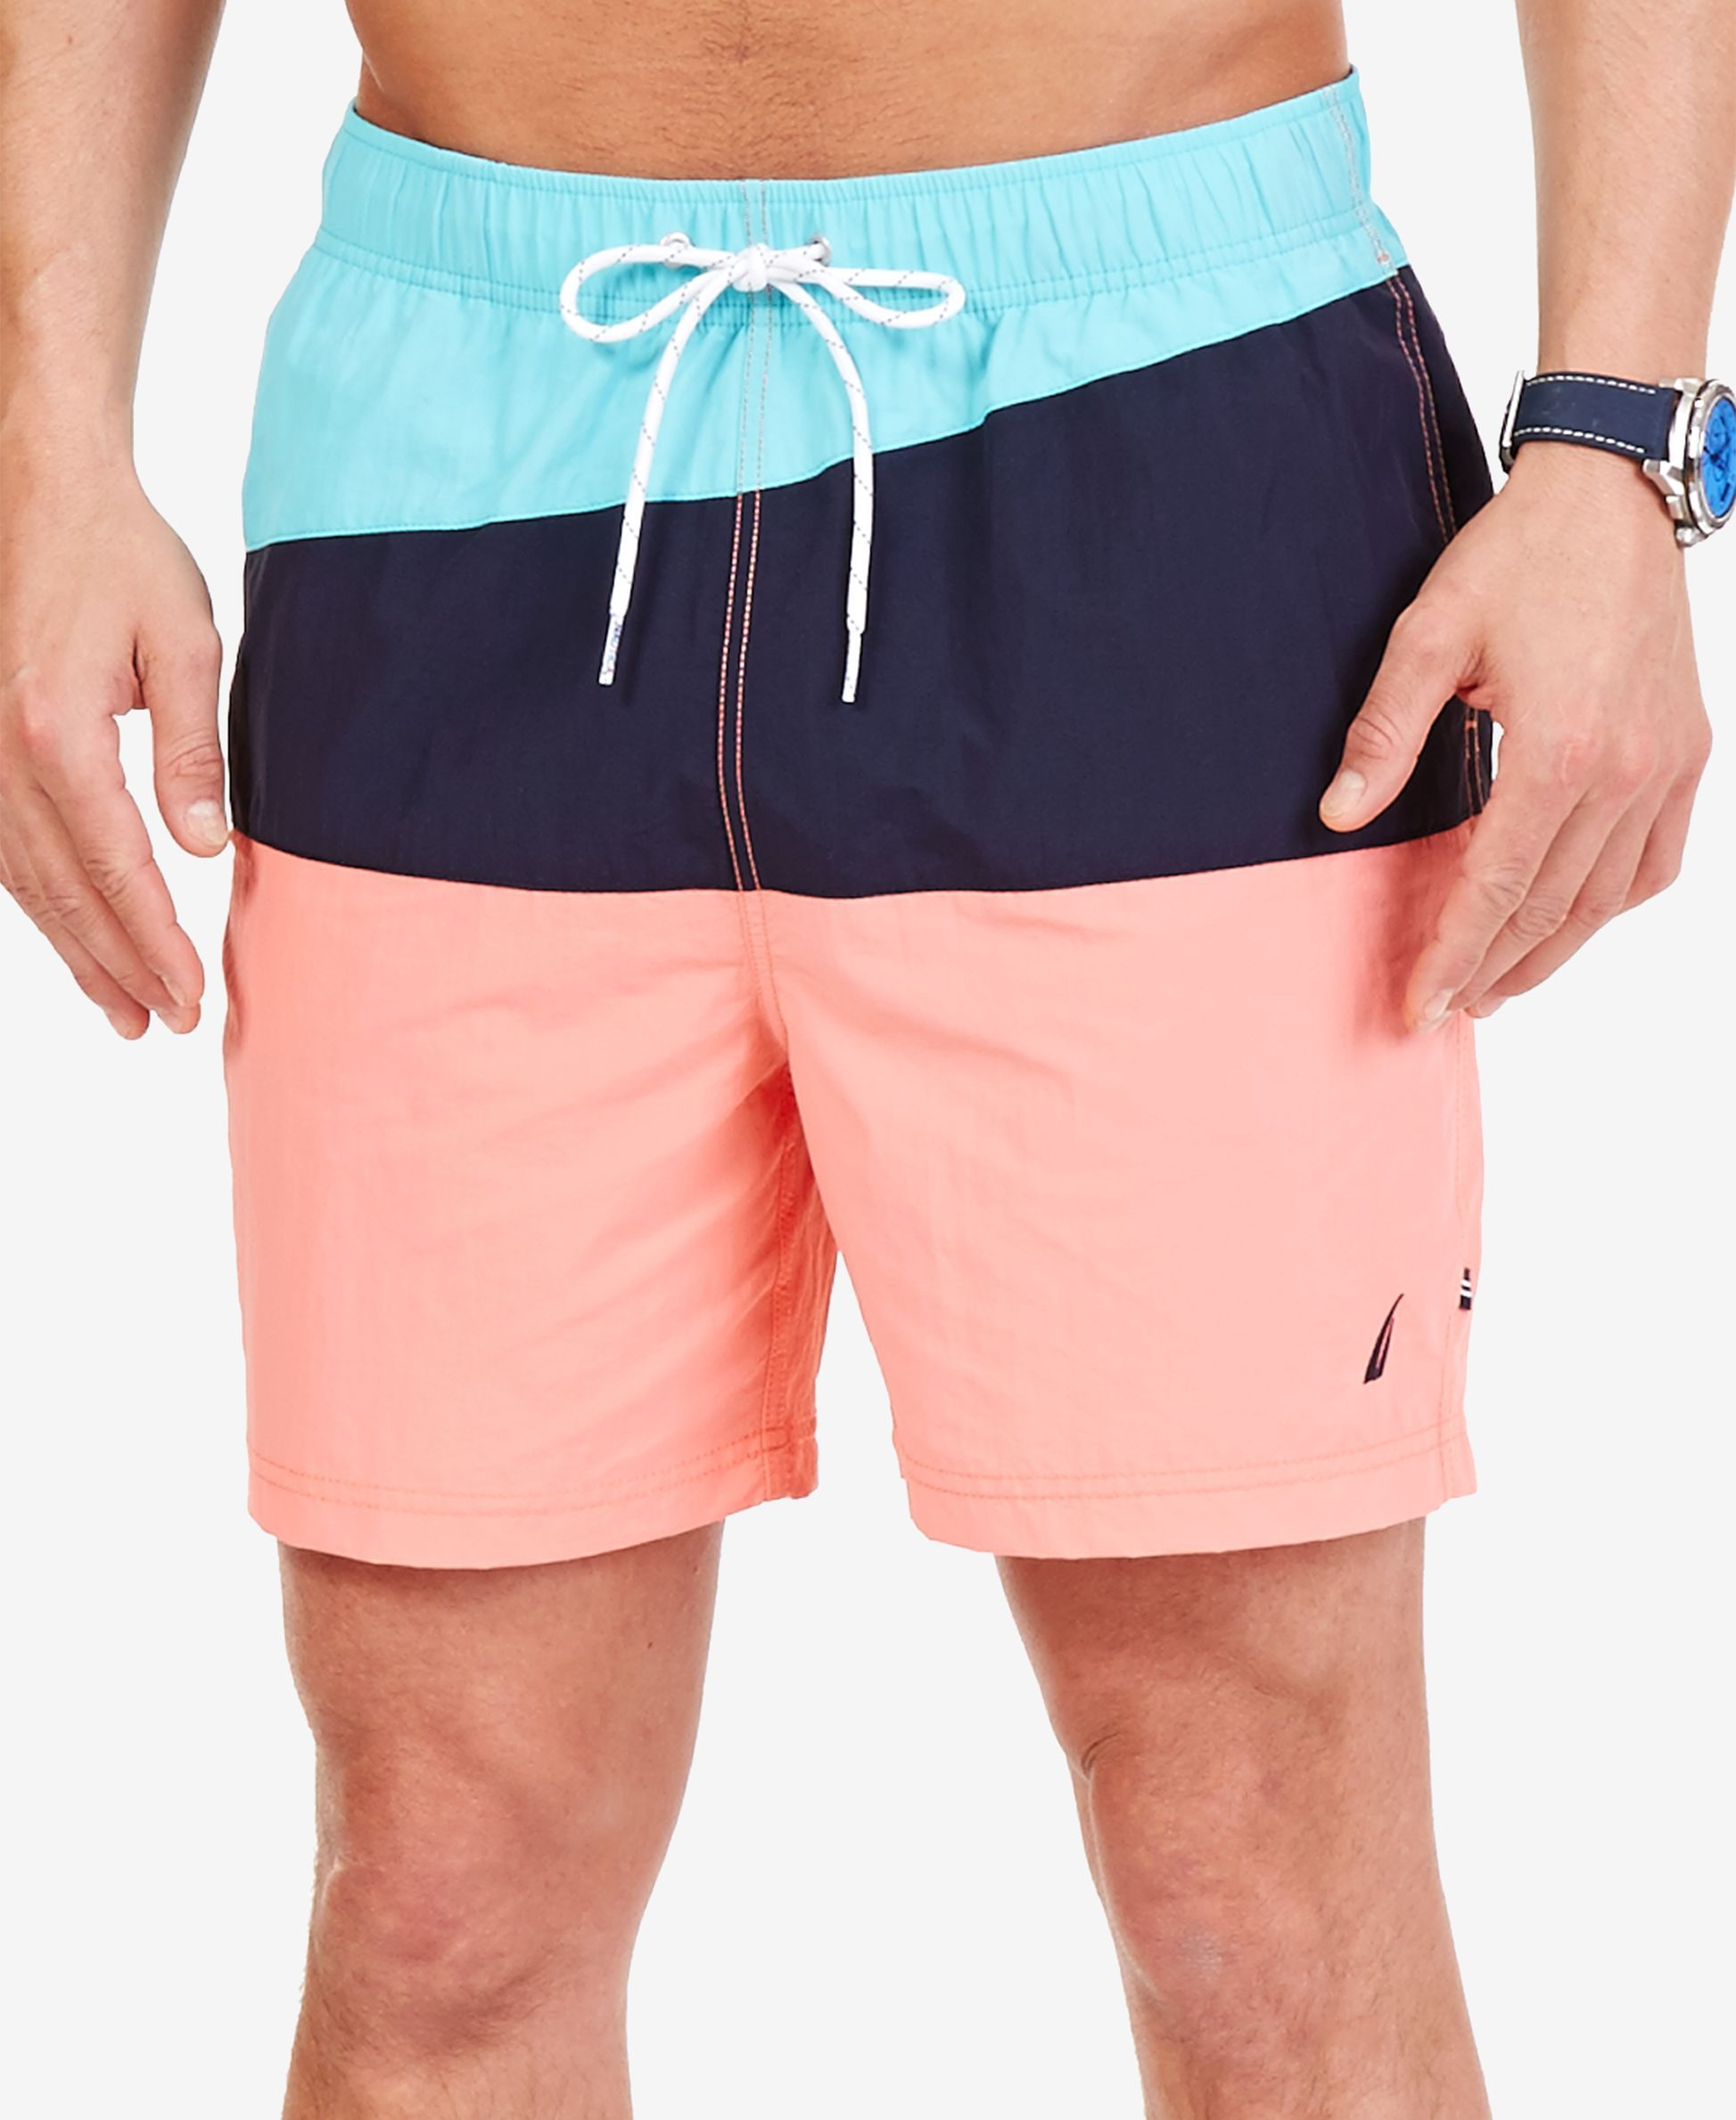 b901eb4389 A colorblocked design lends bold style to the functional quick dry fabric  of these swim trunks